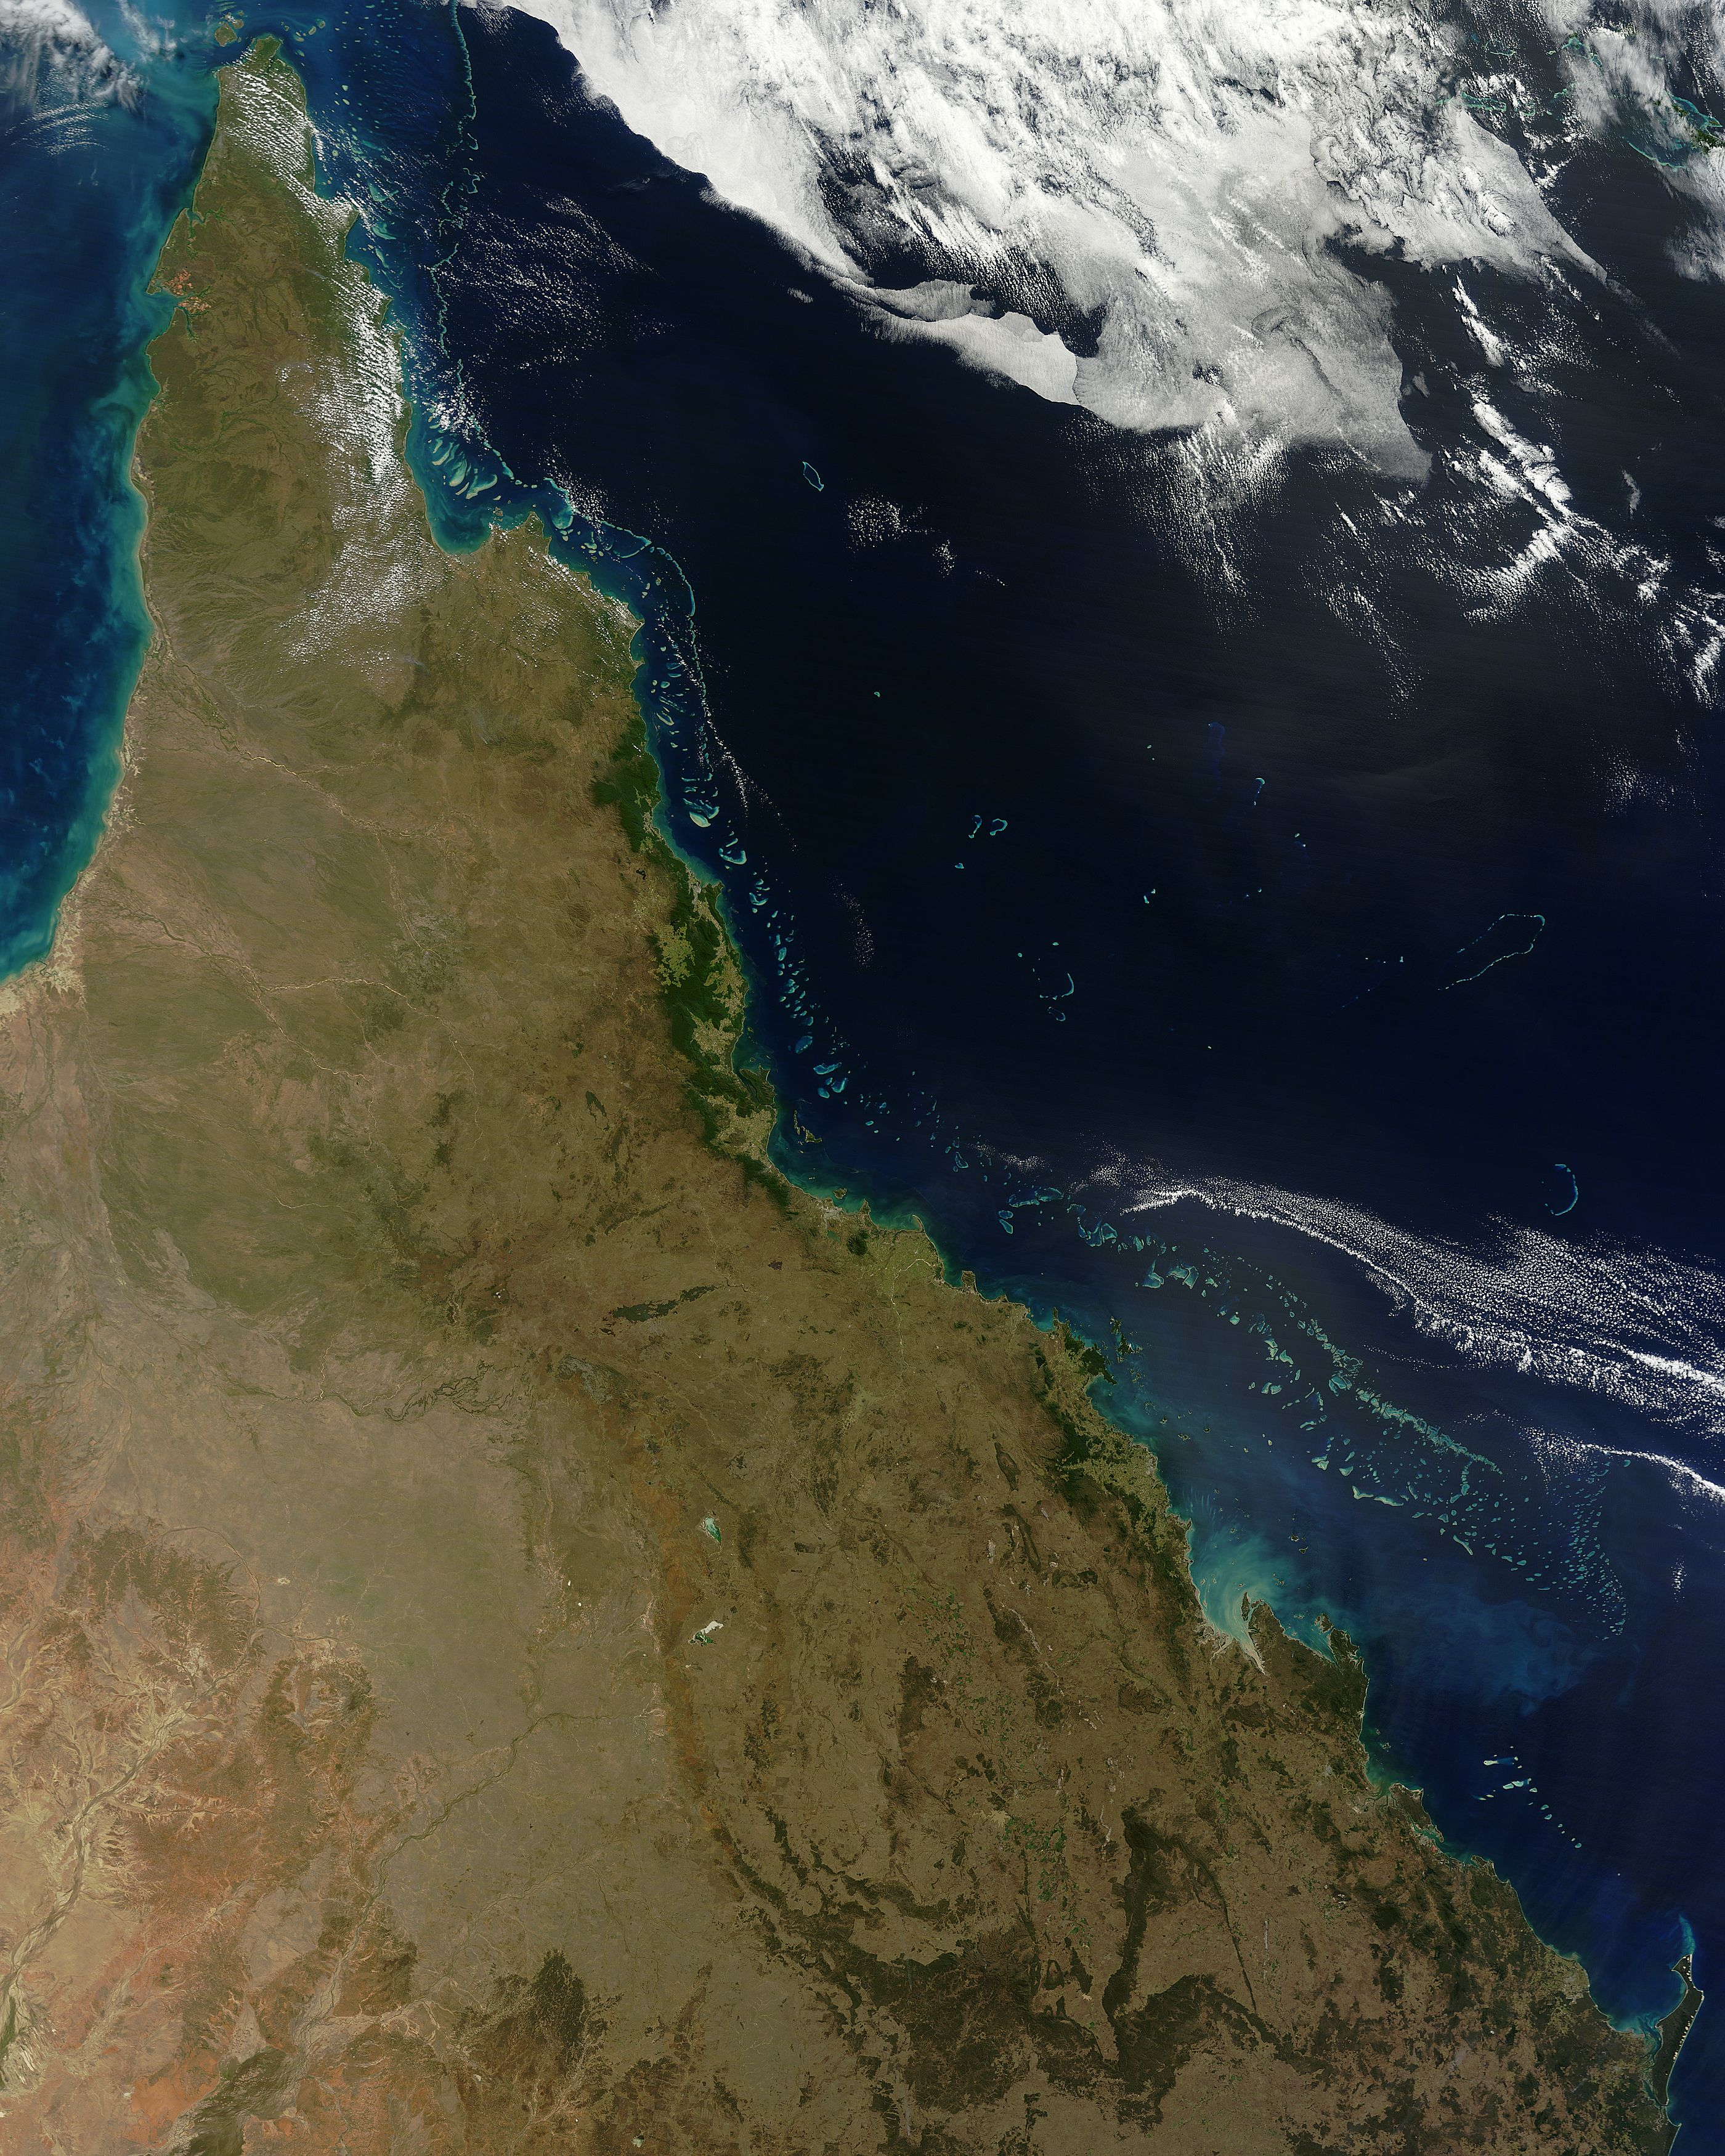 NASA MODIS Image Of The Day: August 13, 2012